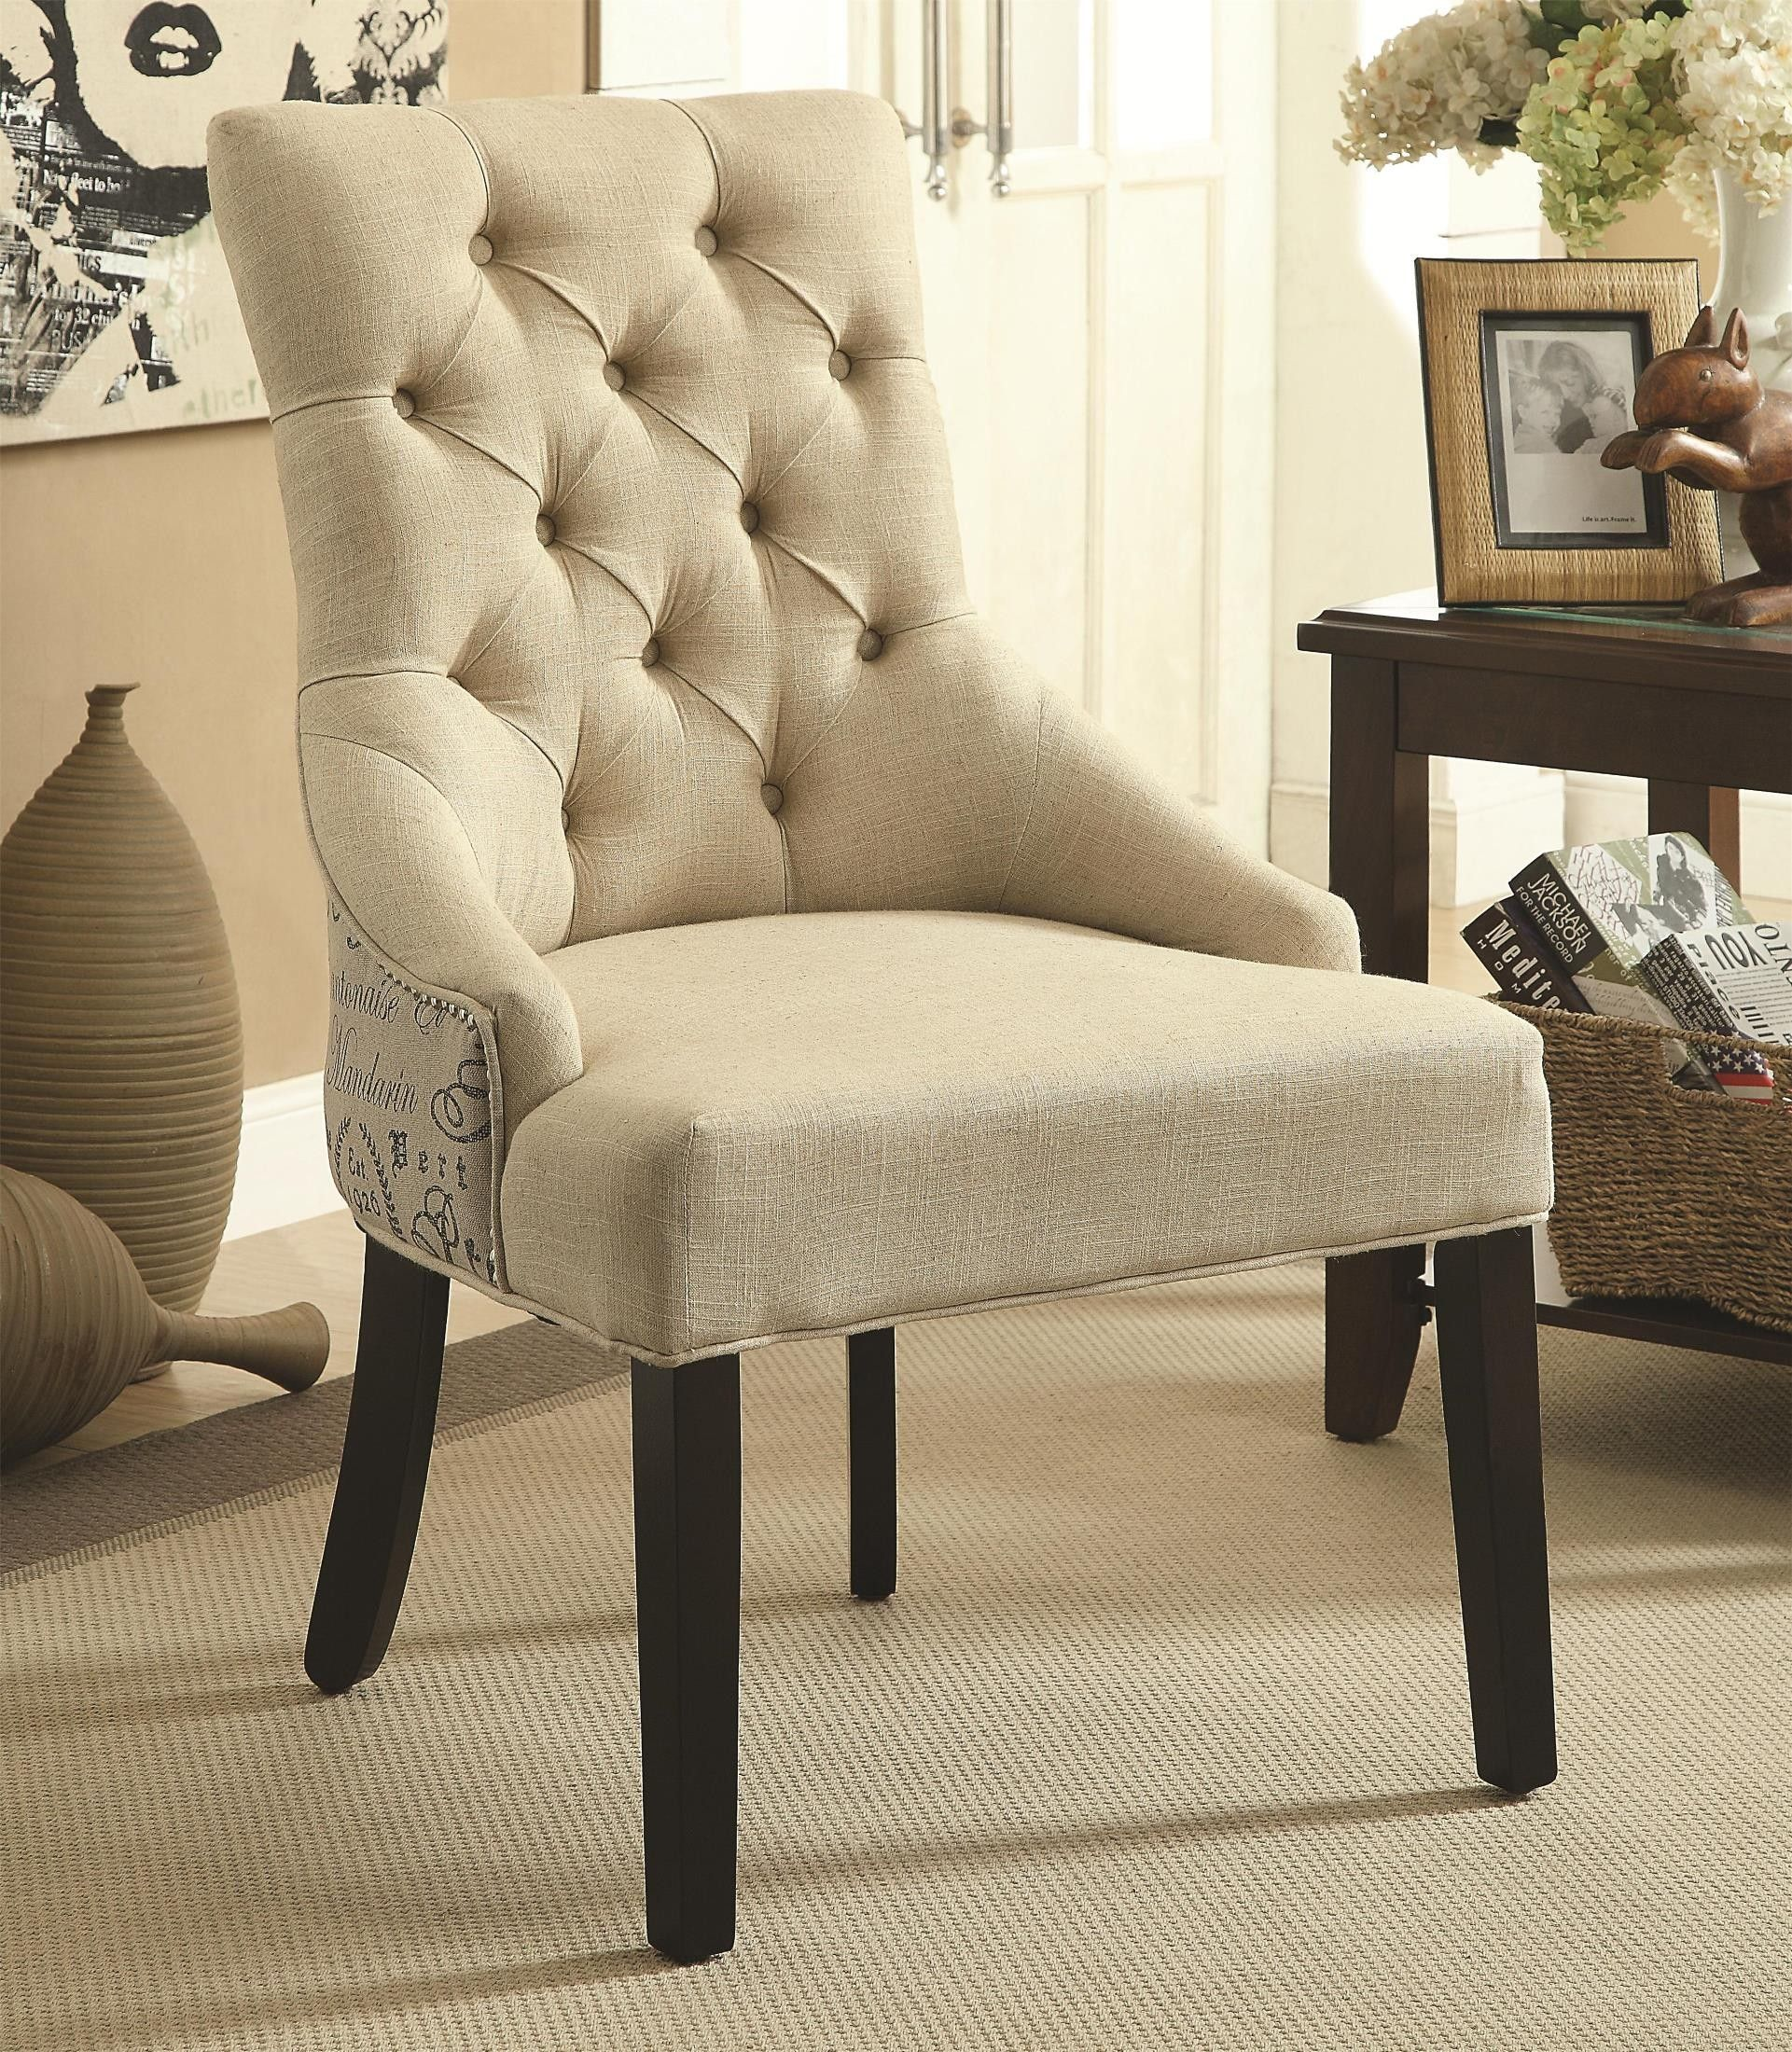 902171 tufted accent chair set of 2 902171 coaster